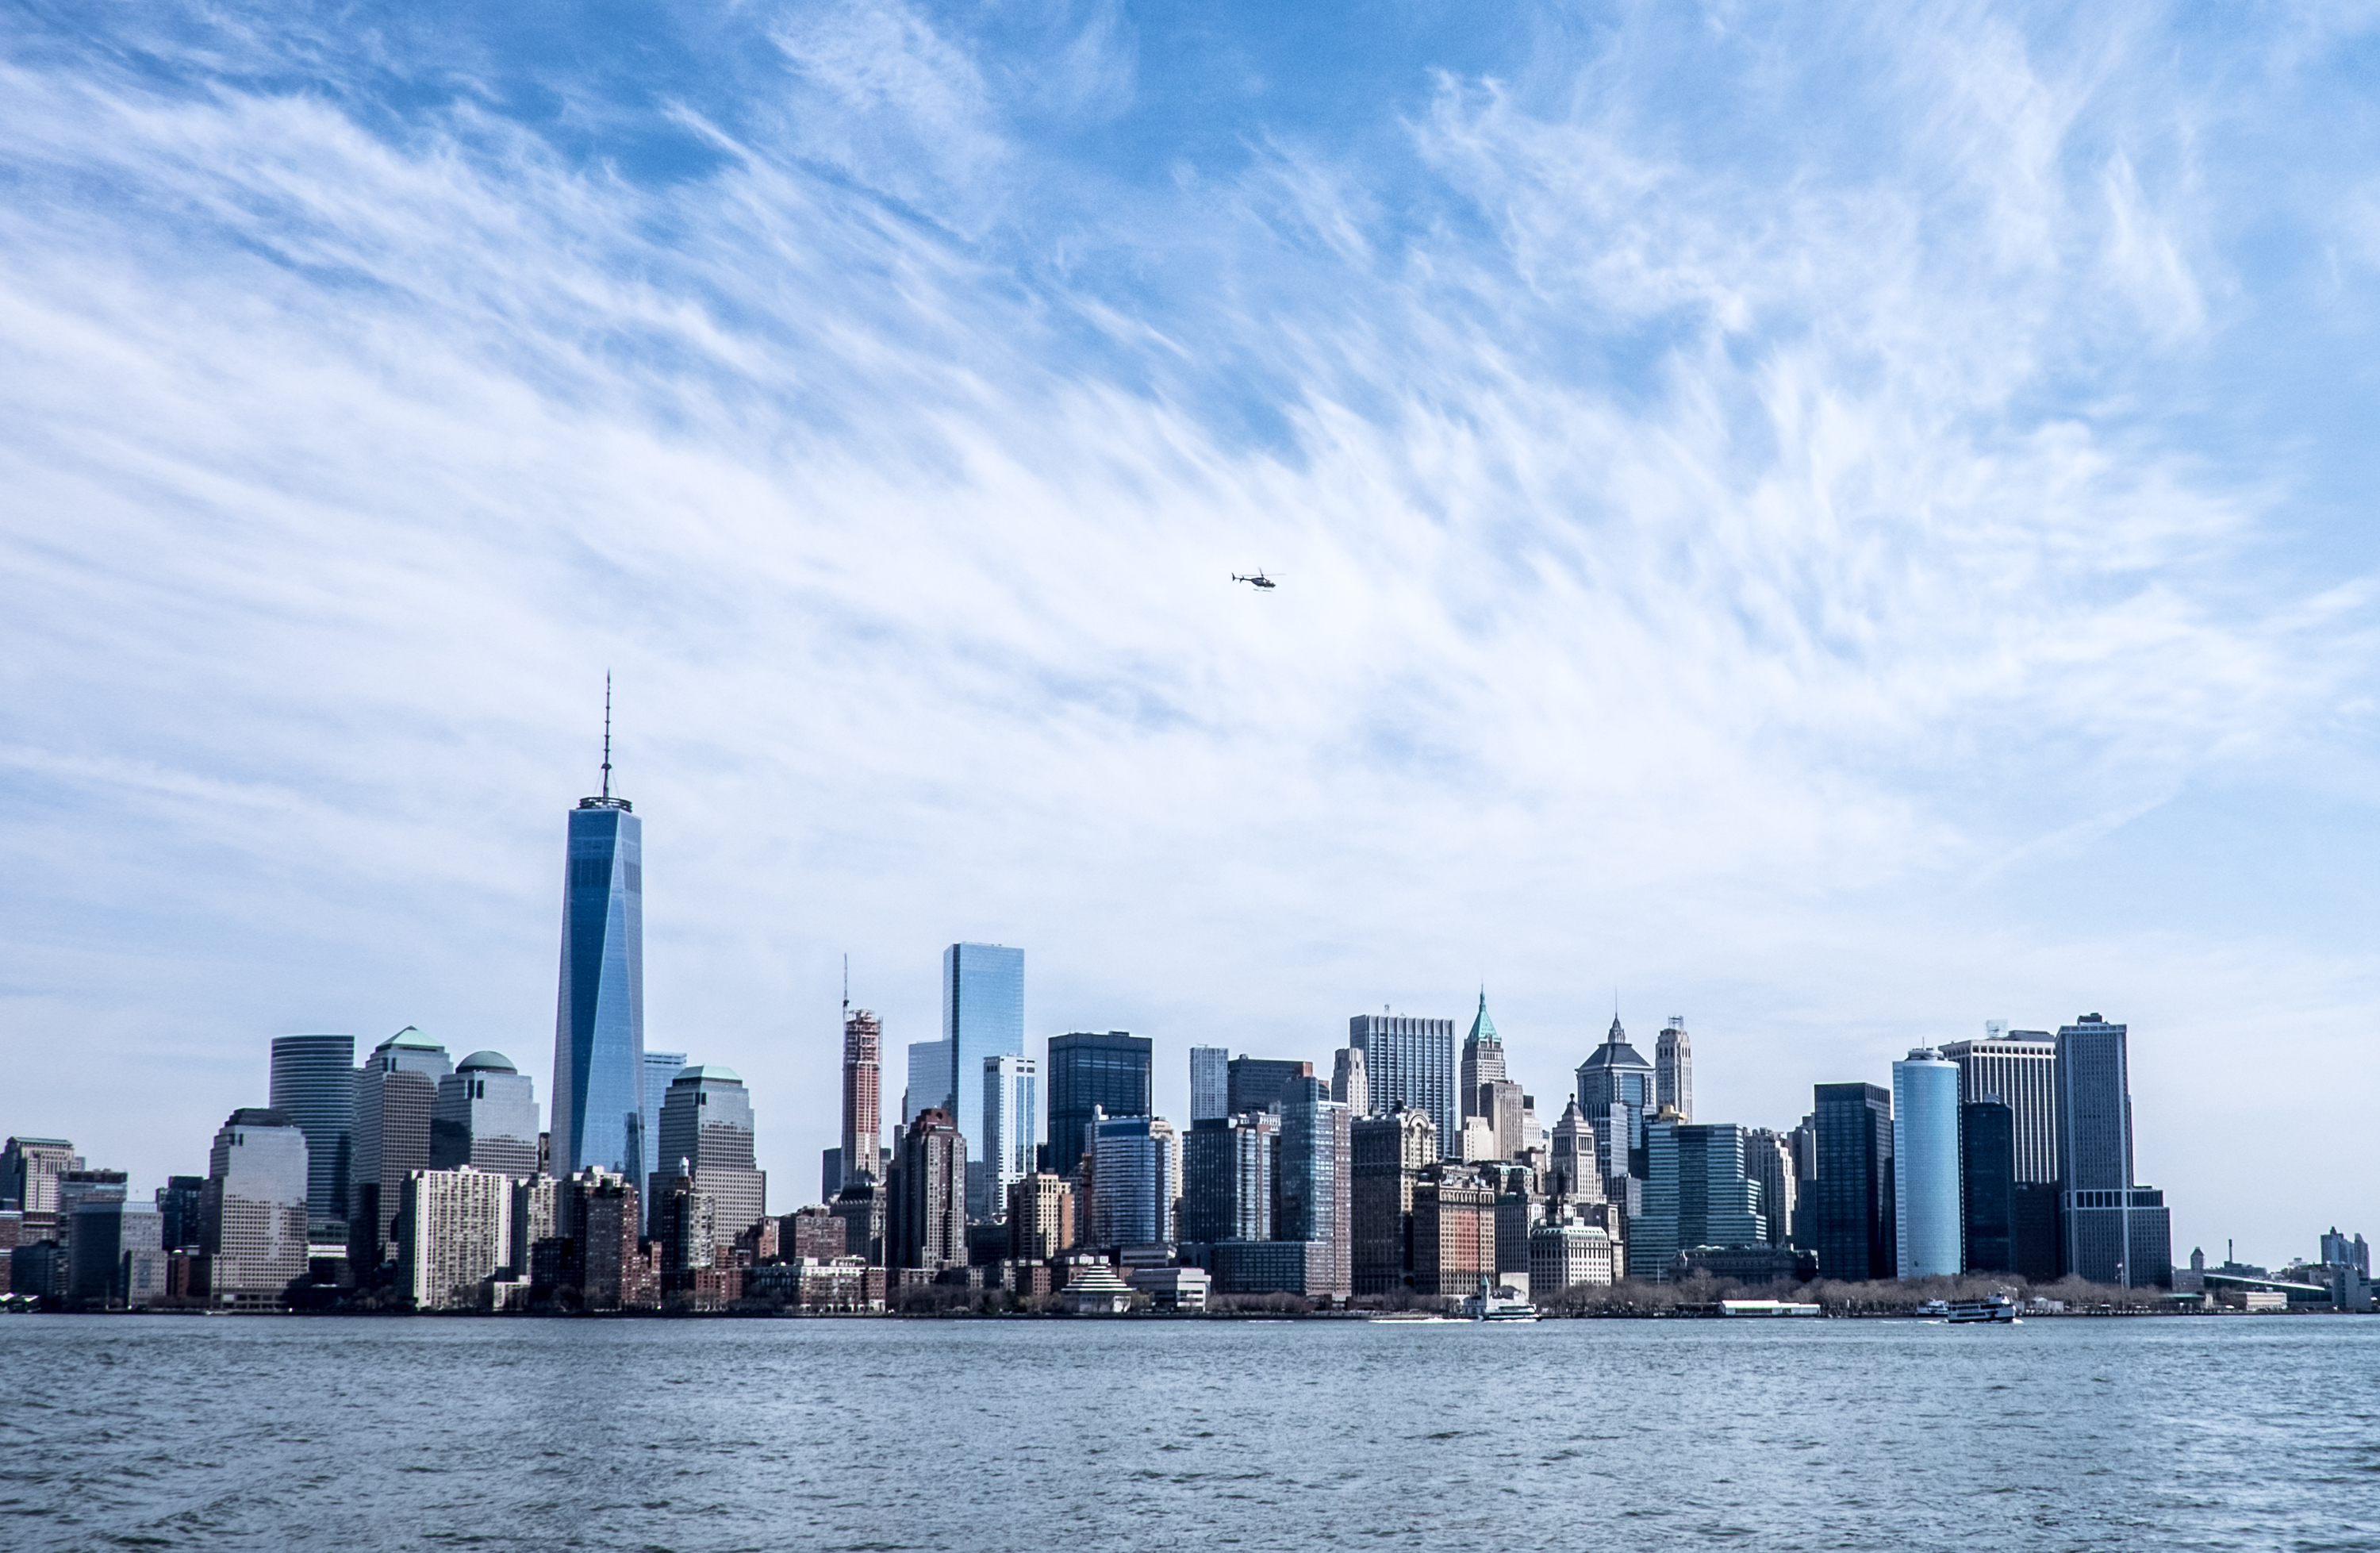 NYC is one of the top 10 most expensive cities in the world